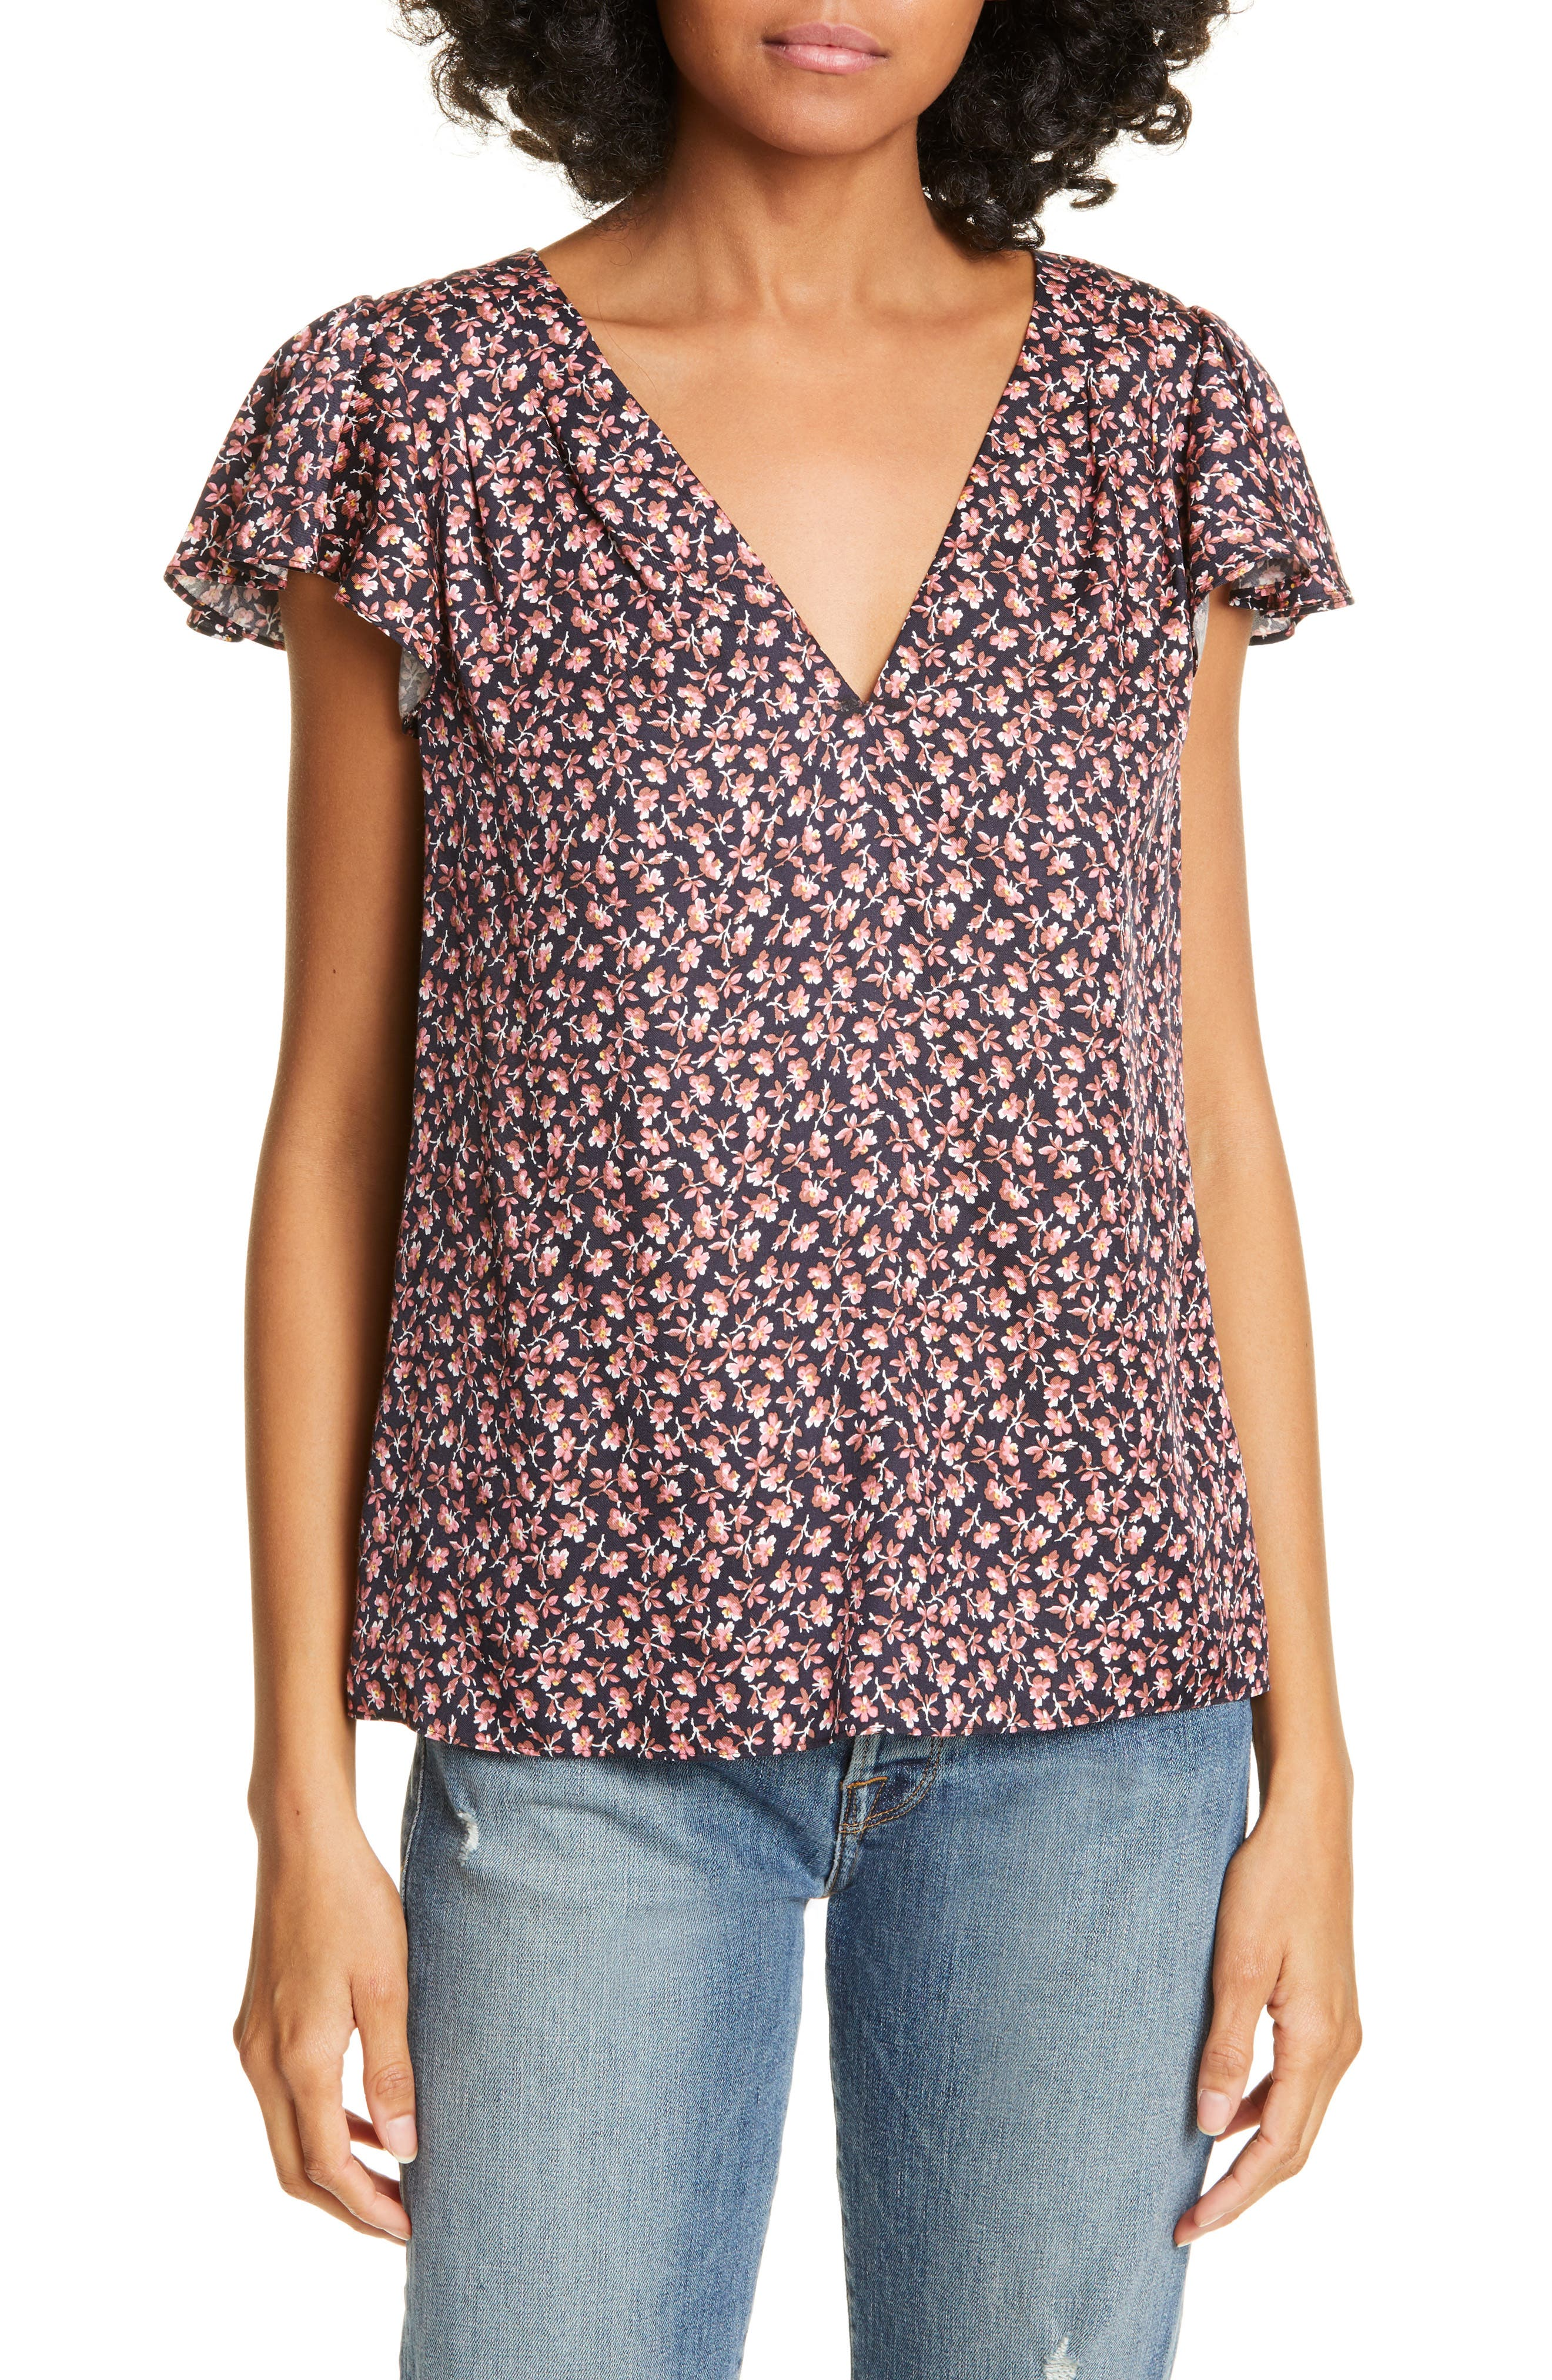 REBECCA TAYLOR, Francesca Floral Silk Blend Blouse, Main thumbnail 1, color, NAVY COMBO